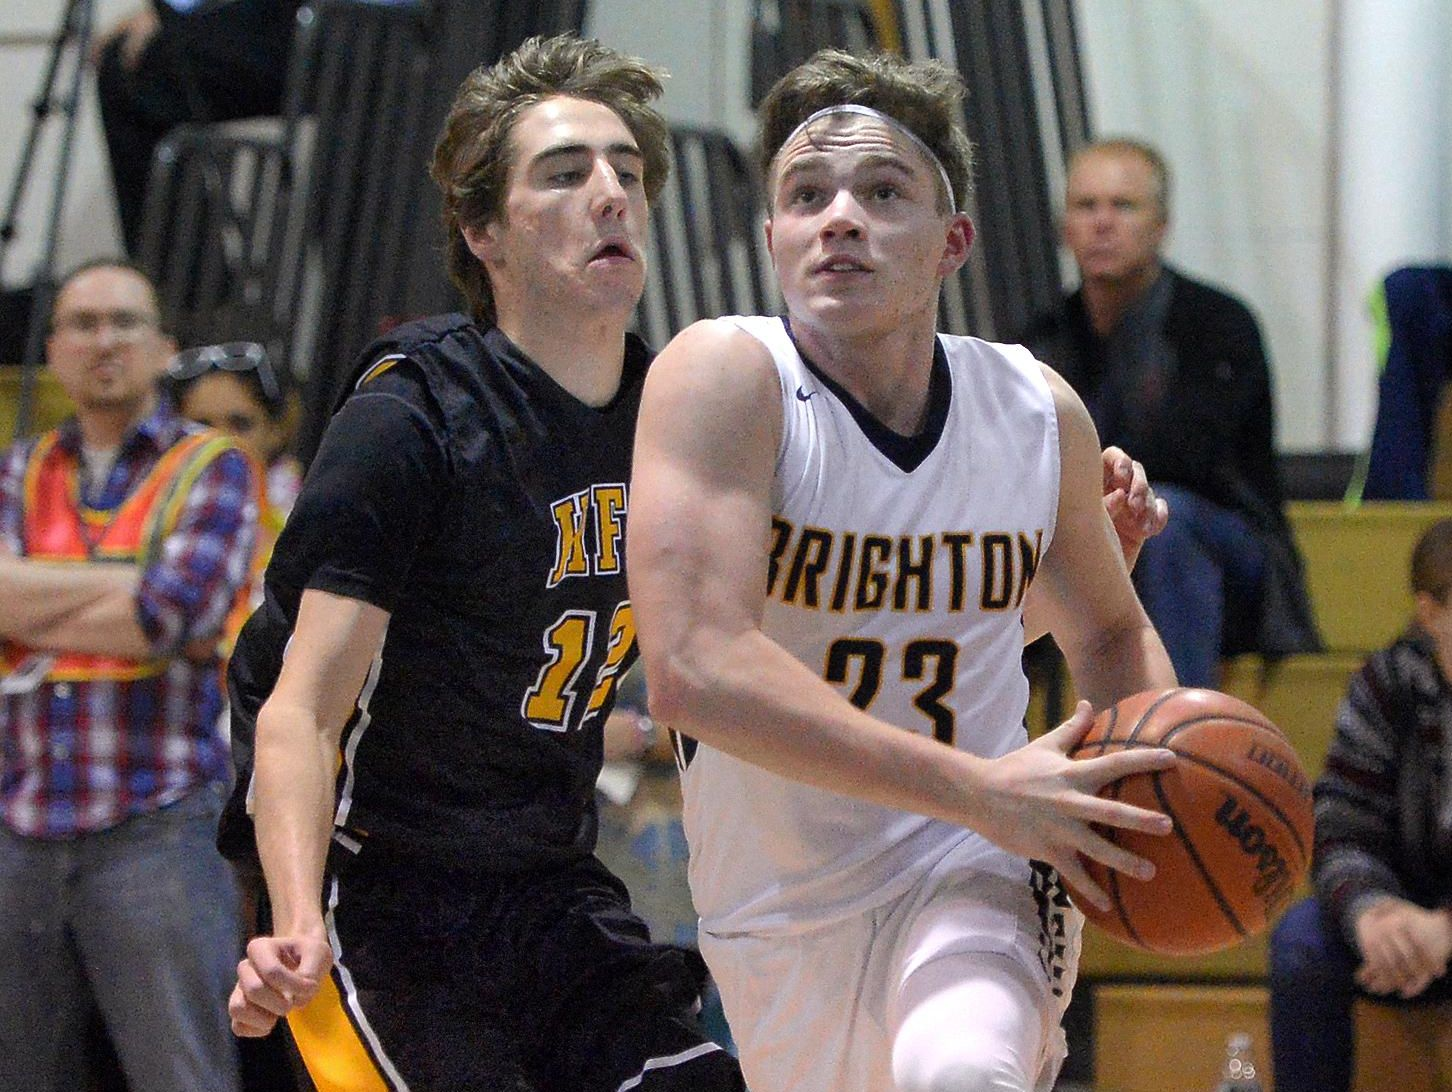 Brighton's Liam Williams, right, drives the baseline past Honeoye Falls-Lima's Coleman Roach on Feb. 3, 2016.